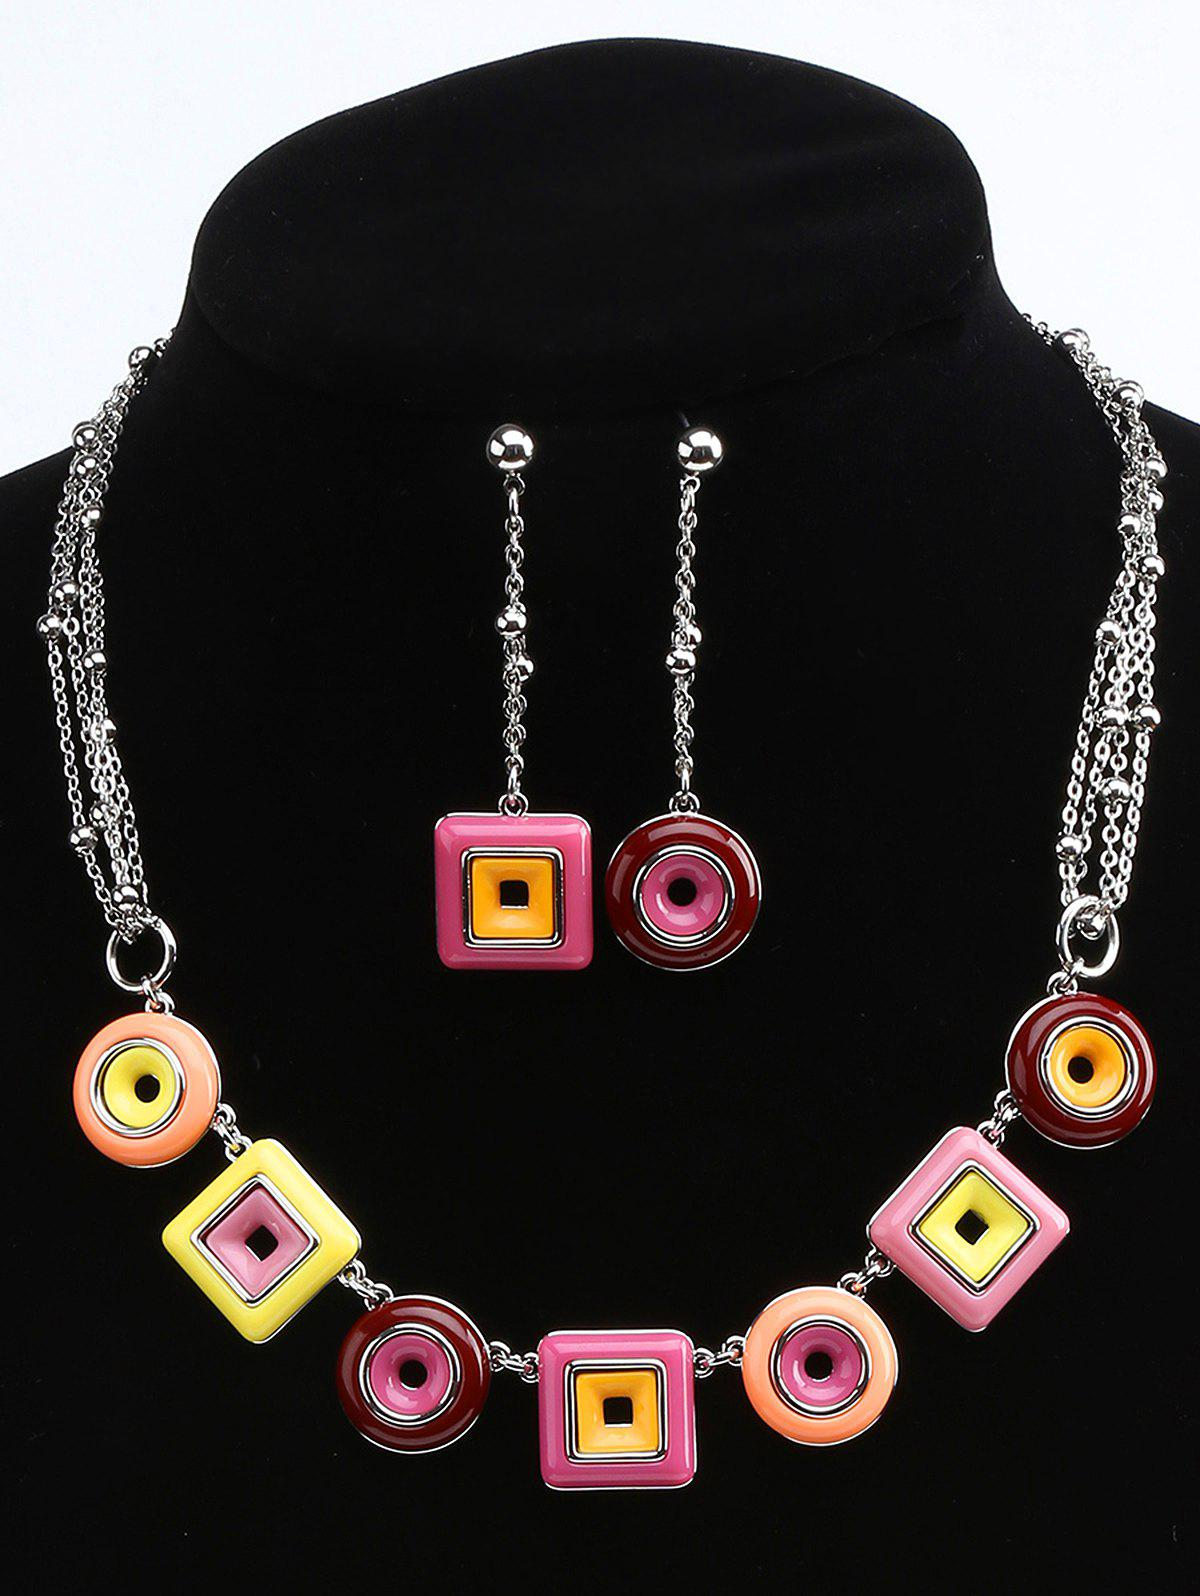 Geometric Round and Rectangle Necklace and Drop Earrings rectangle design drop earrings